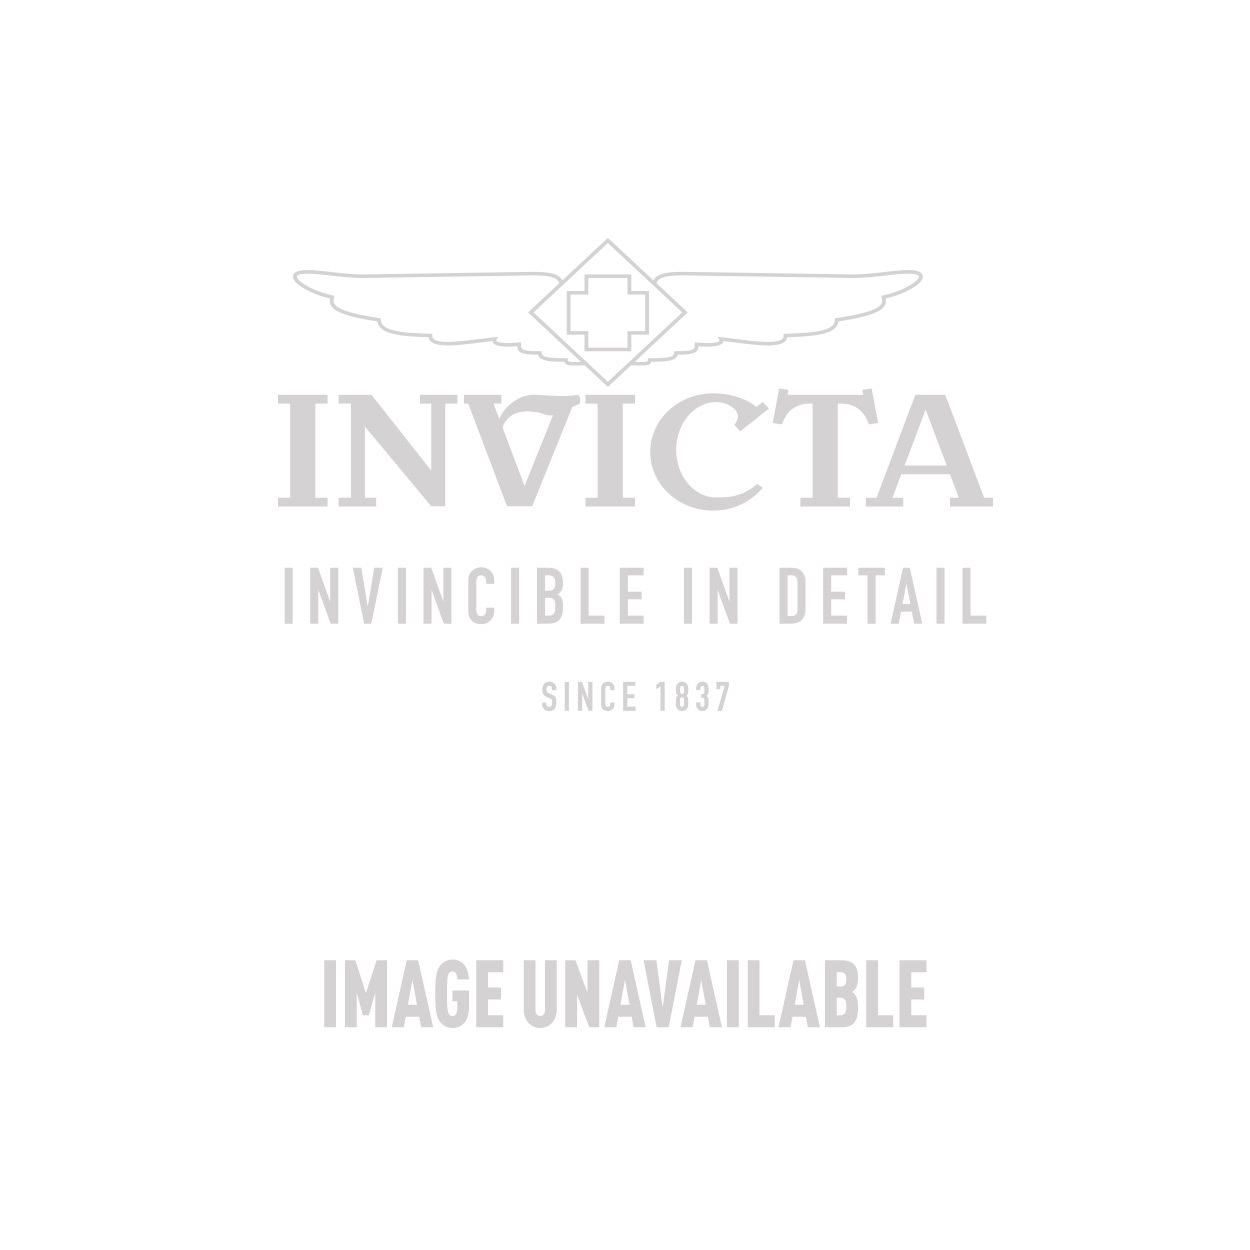 Invicta Objet D Art Mens Automatic 44 mm Stainless Steel Case Black Dial - Model 27559